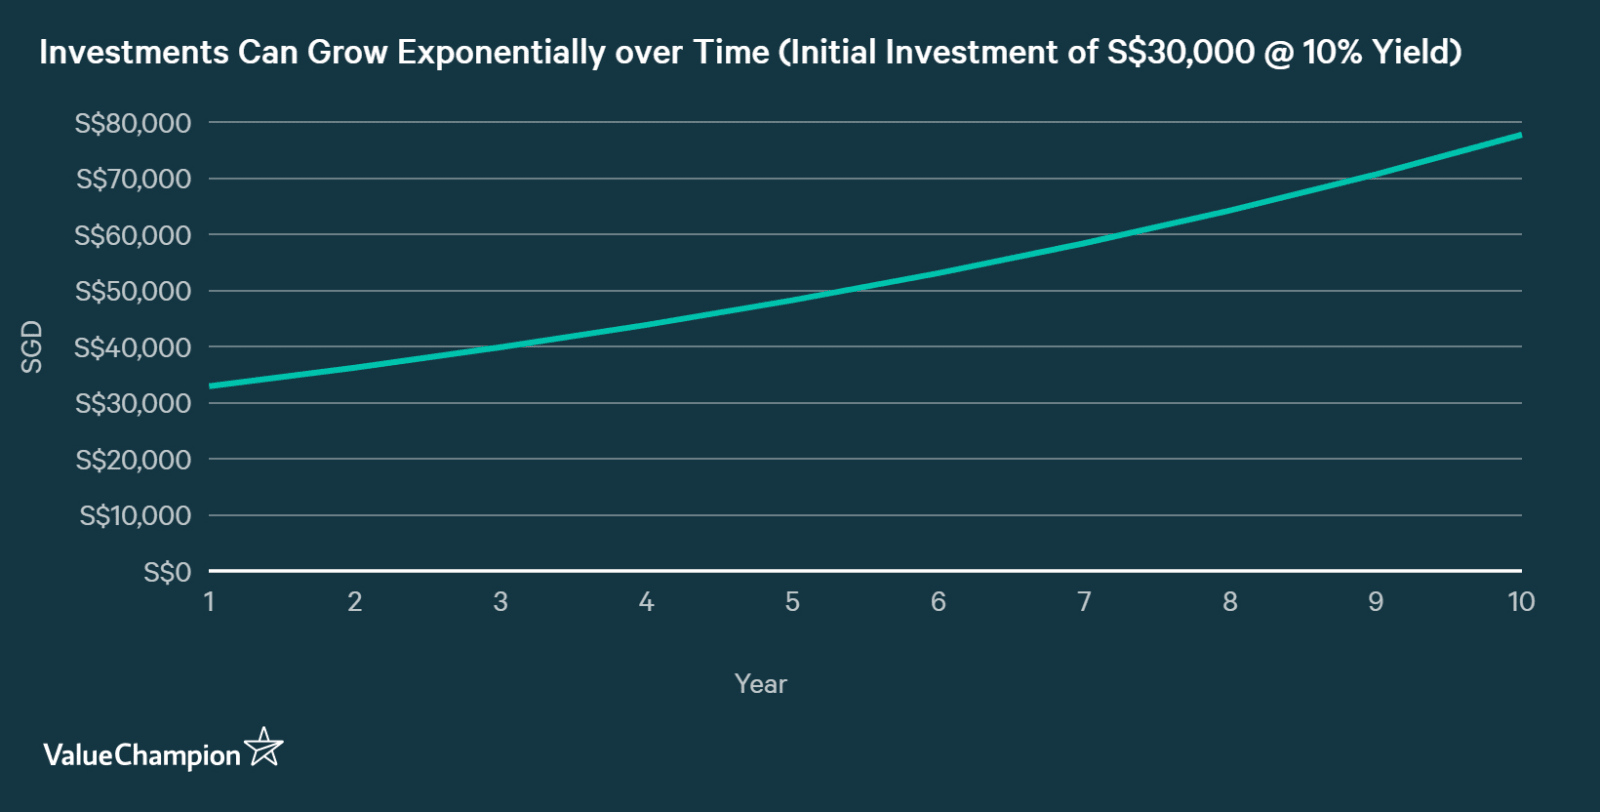 Investments can grow exponentially over time